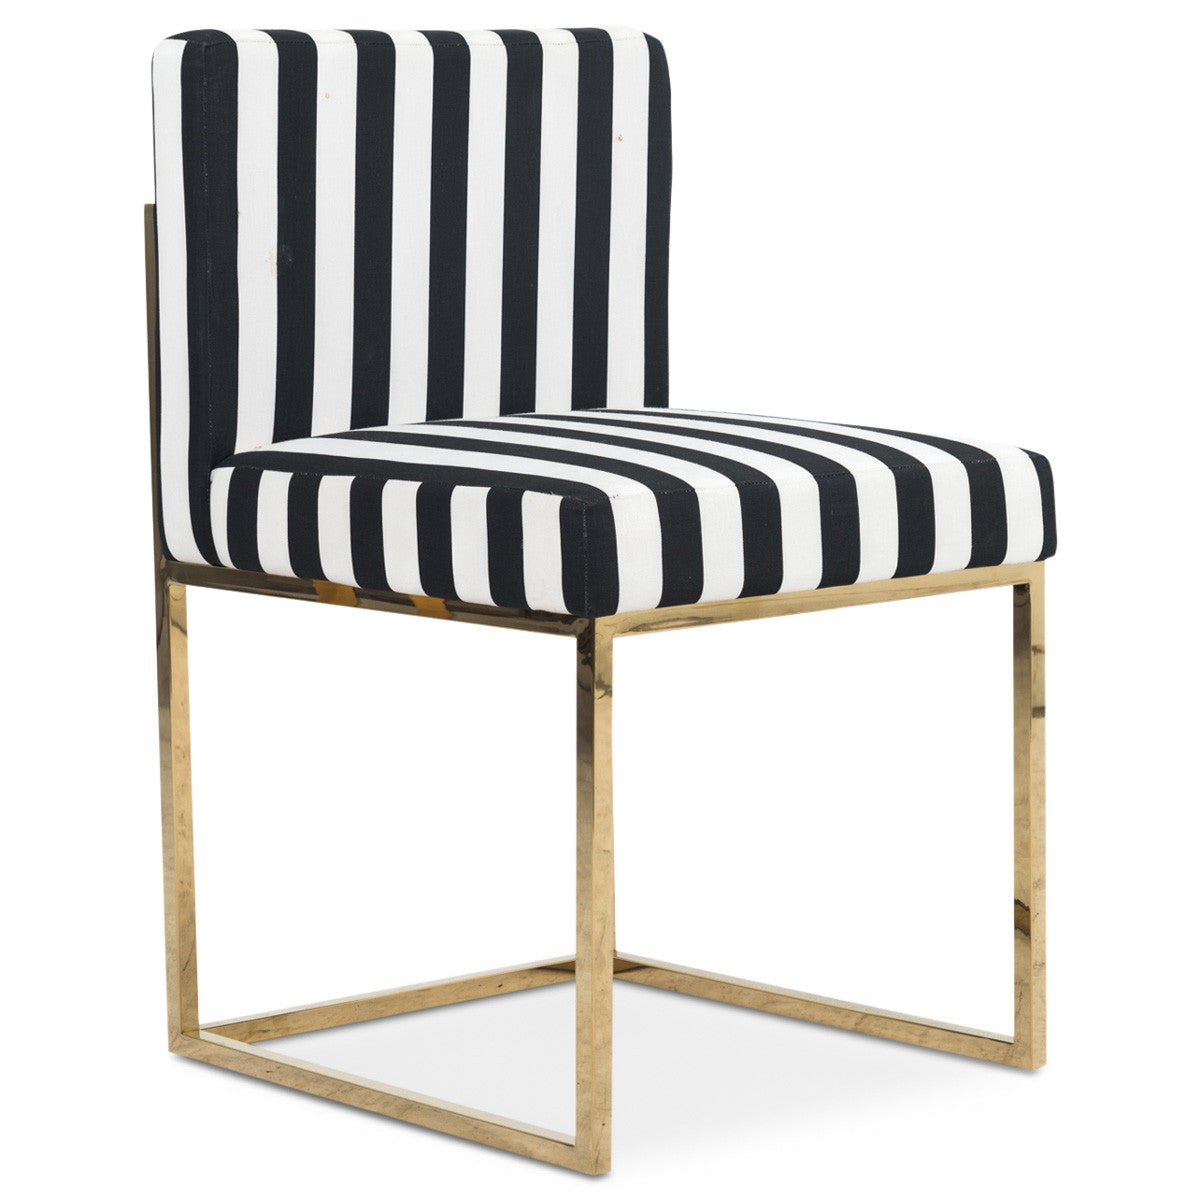 Superieur 007 Dining Chair In Black And White Stripes